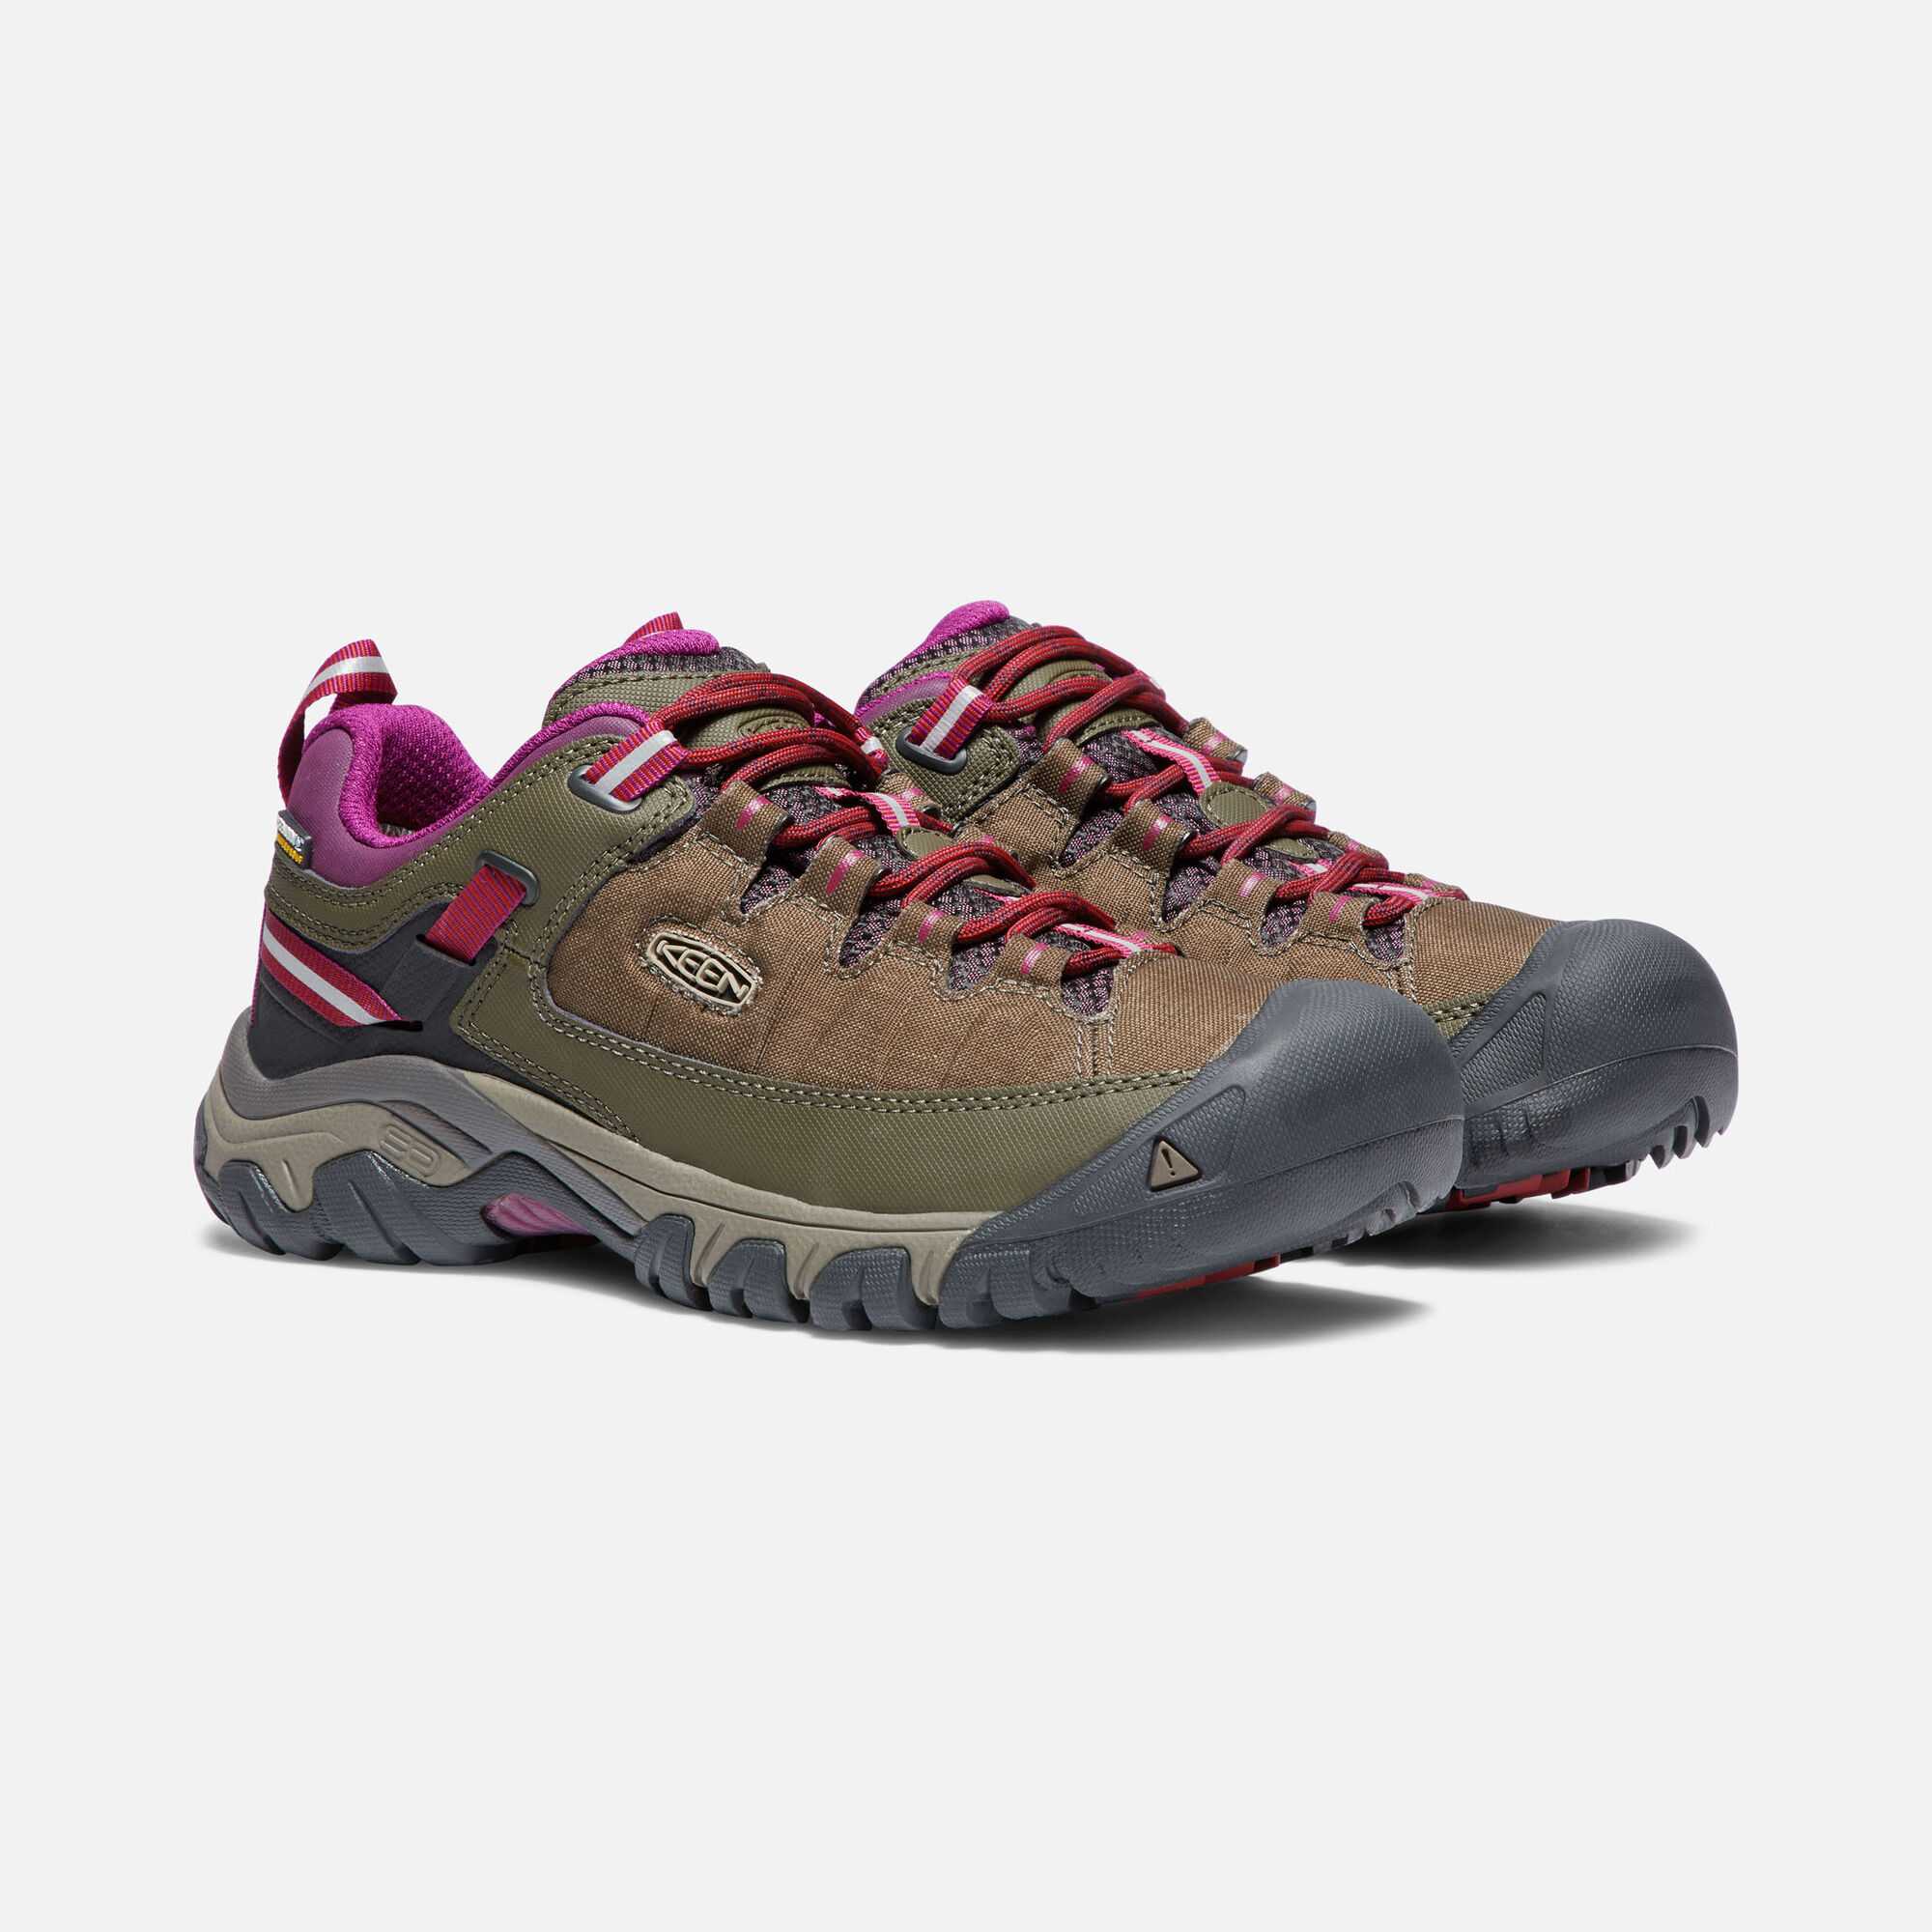 02279681149 Women's TARGHEE EXP Waterproof - A trail icon that's rugged, yet ...